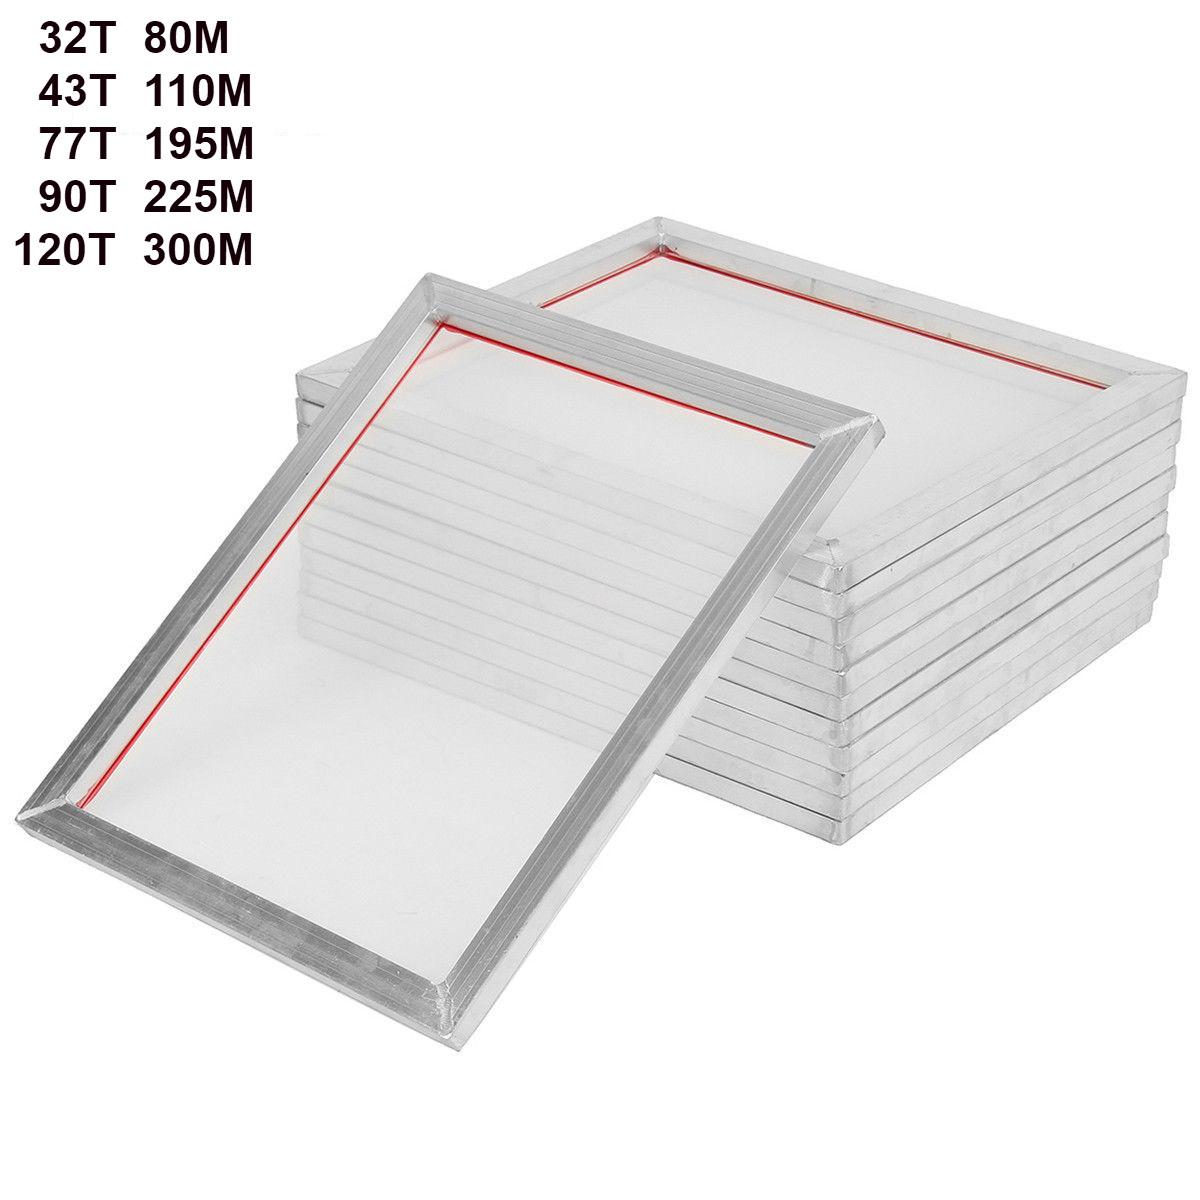 5Pack 46cm 41cm Aluminum Silk Screen Printing Press Frame Screens White 18 x16 32T 43T 77T